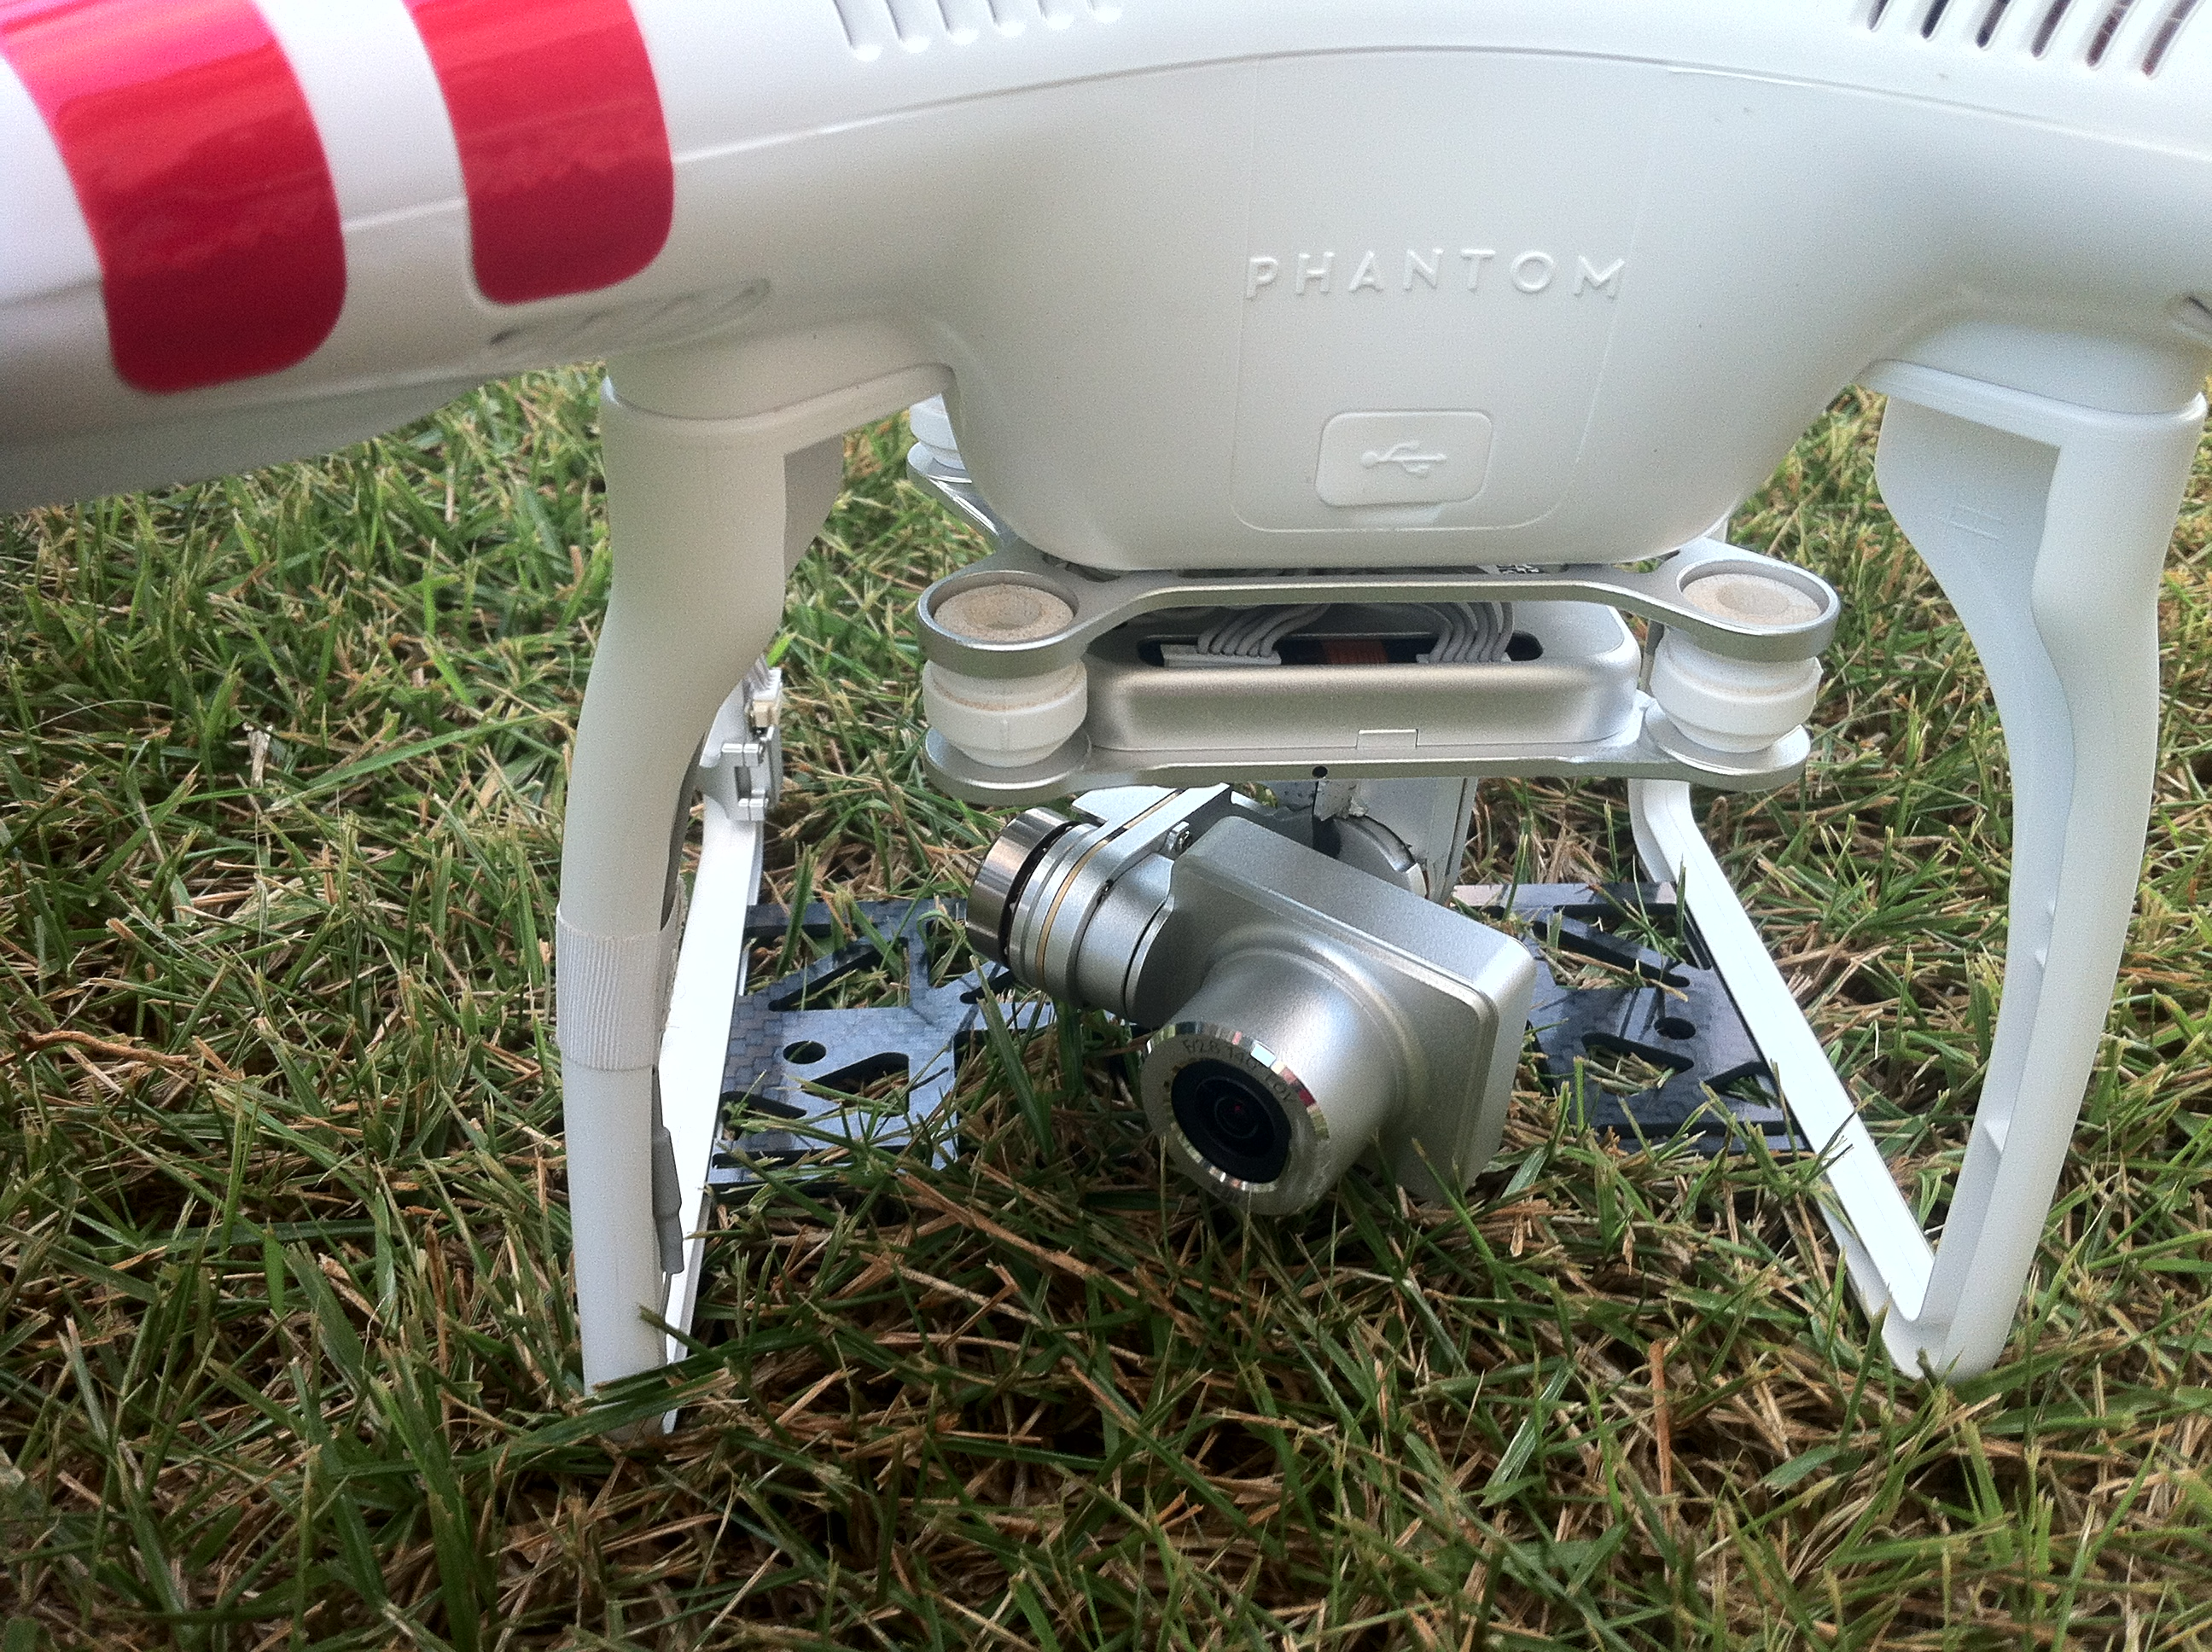 DJI Phantom 2 Vision+ Gimbal guard